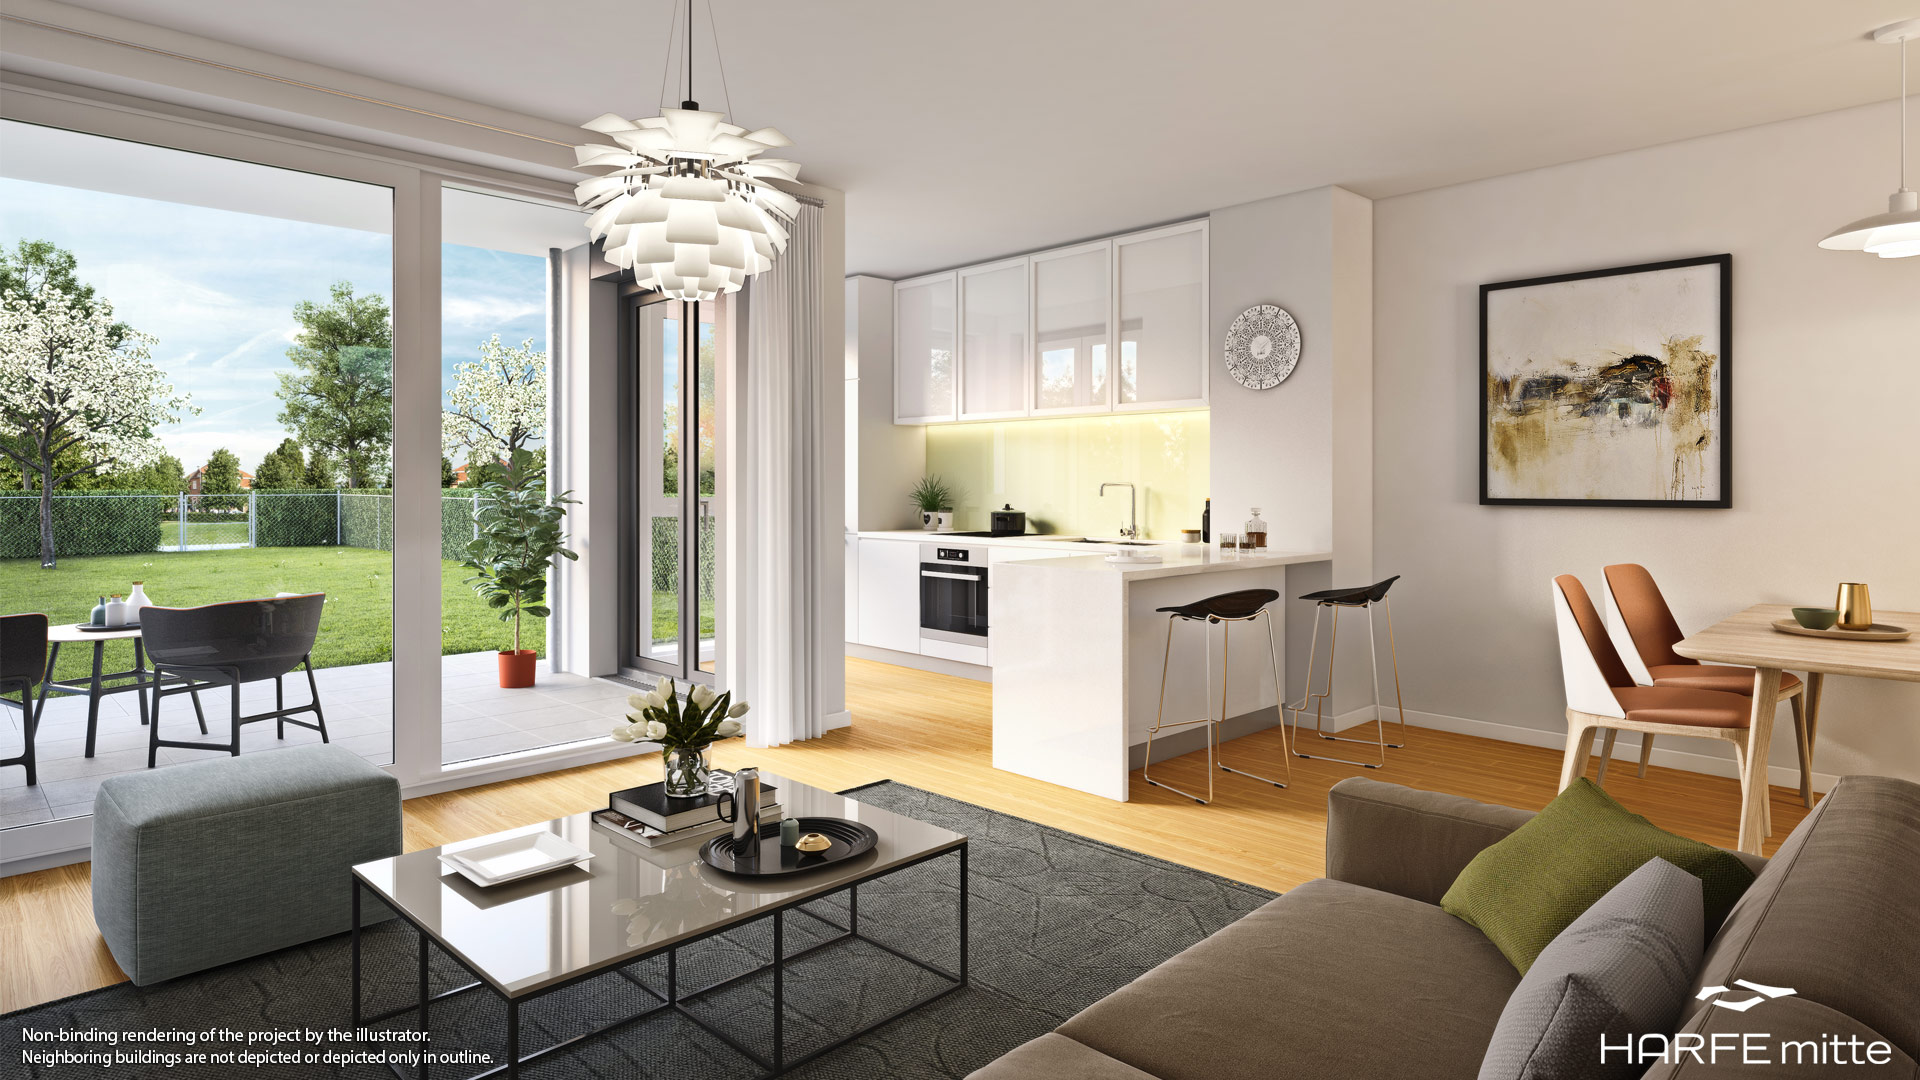 Property HARFE mitte - example illustration living room 1